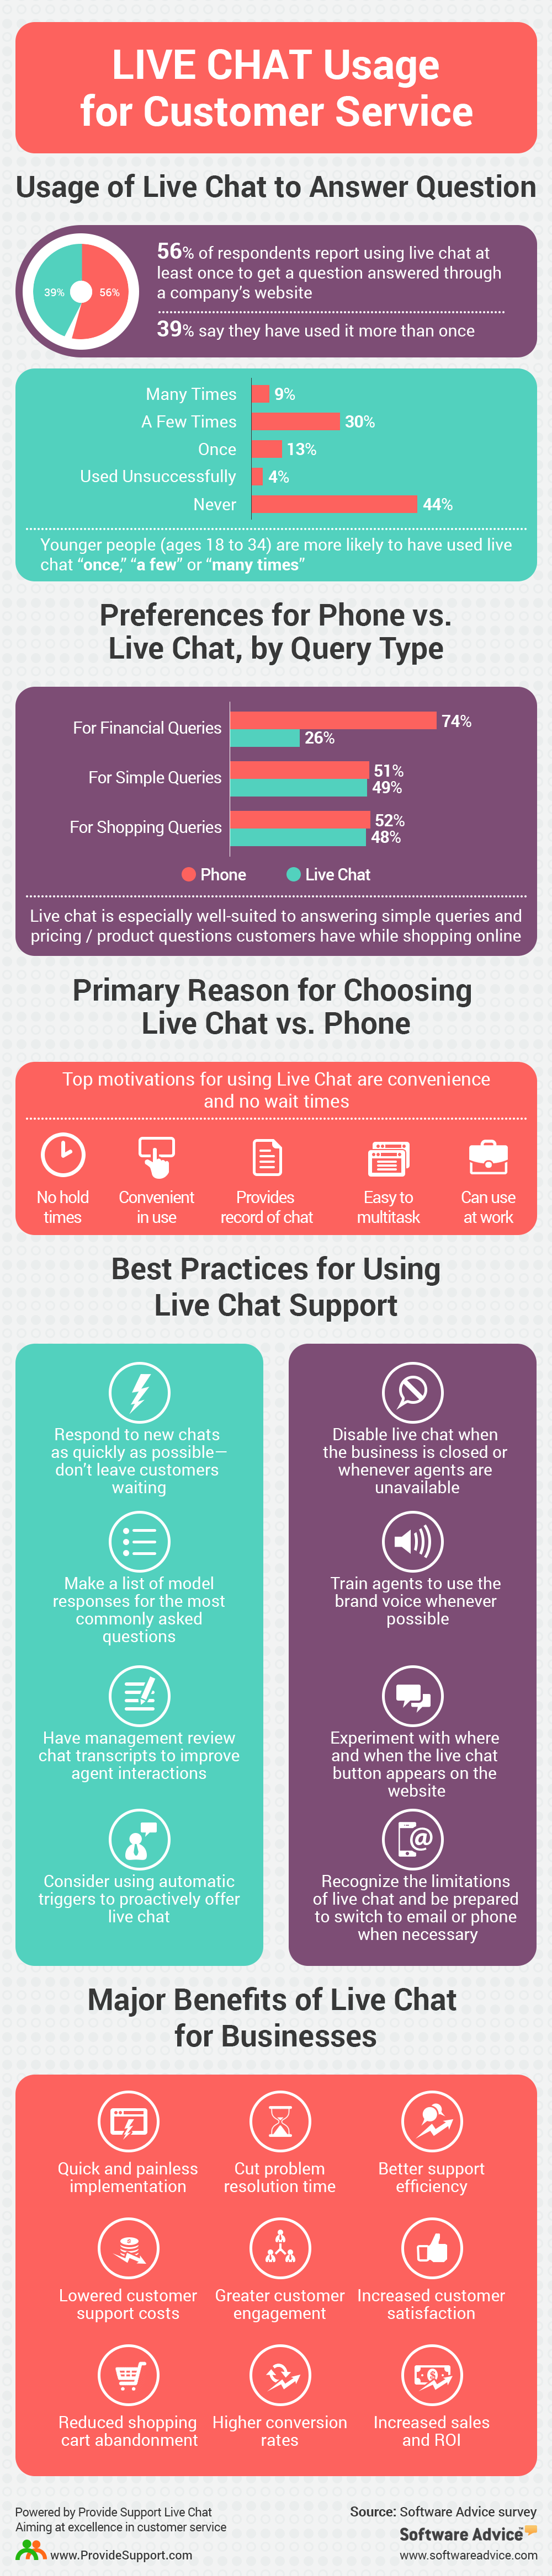 Live Chat Usage for Customer Service [Inforgraphic from Provide Support]